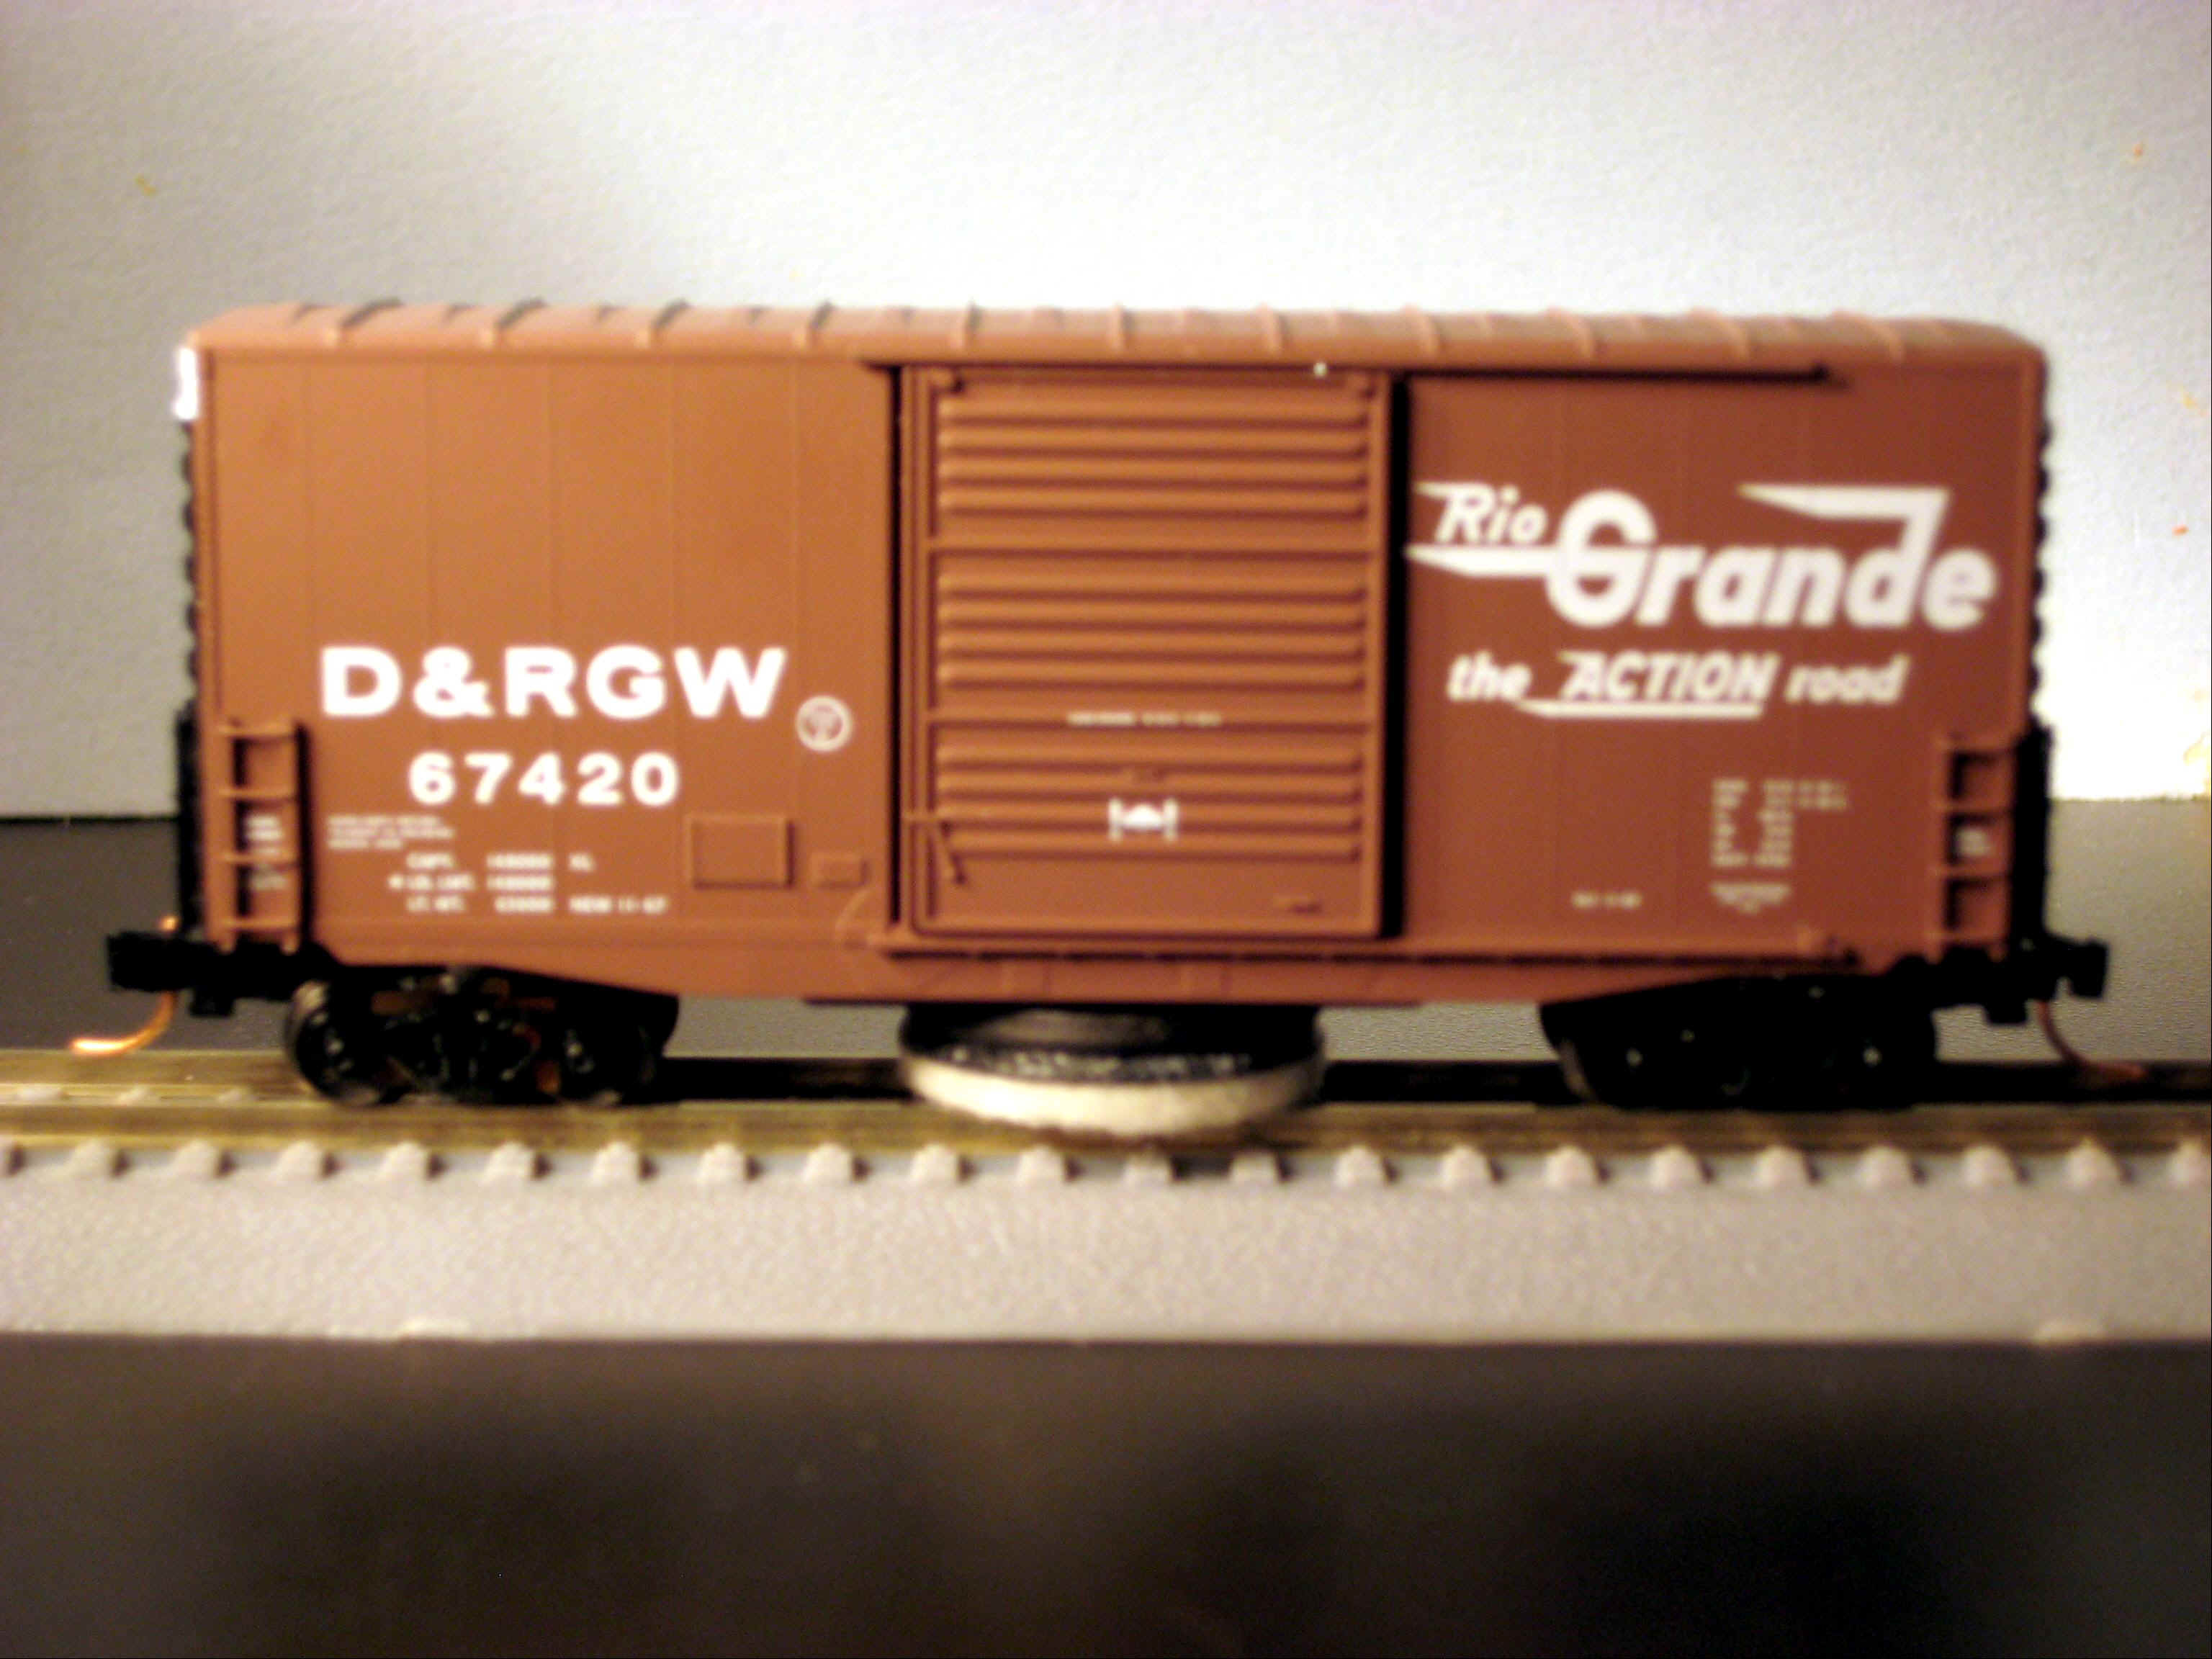 N Scale - MNP - NTC-N004 - Boxcar, 40 Foot, Track Cleaning Car - Rio Grande - 67420